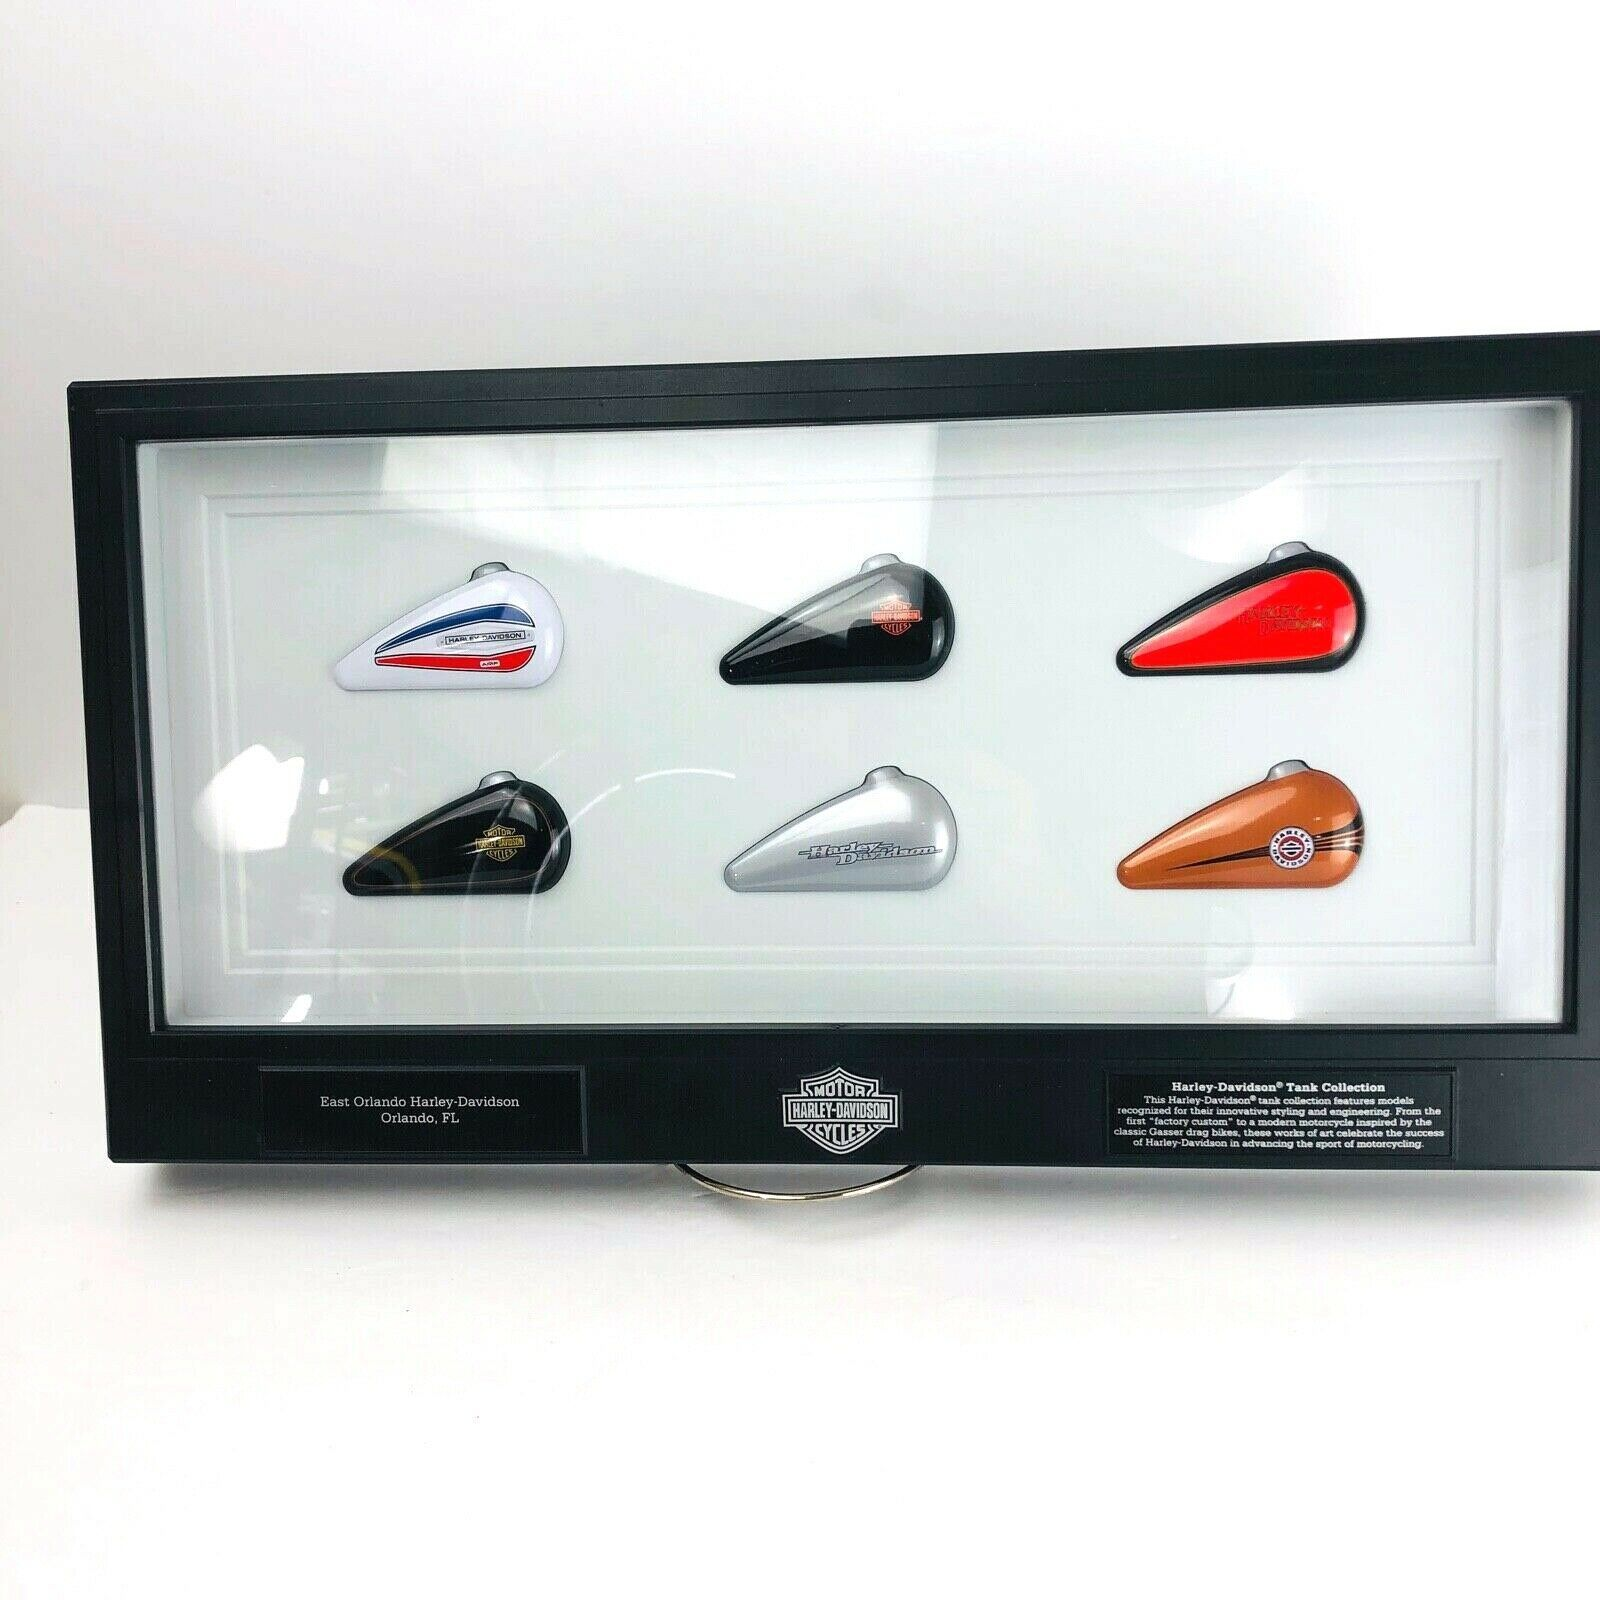 Primary image for Harley Davidson Gas Tank Collection Special Edition East Orlando Wall Art Limitd